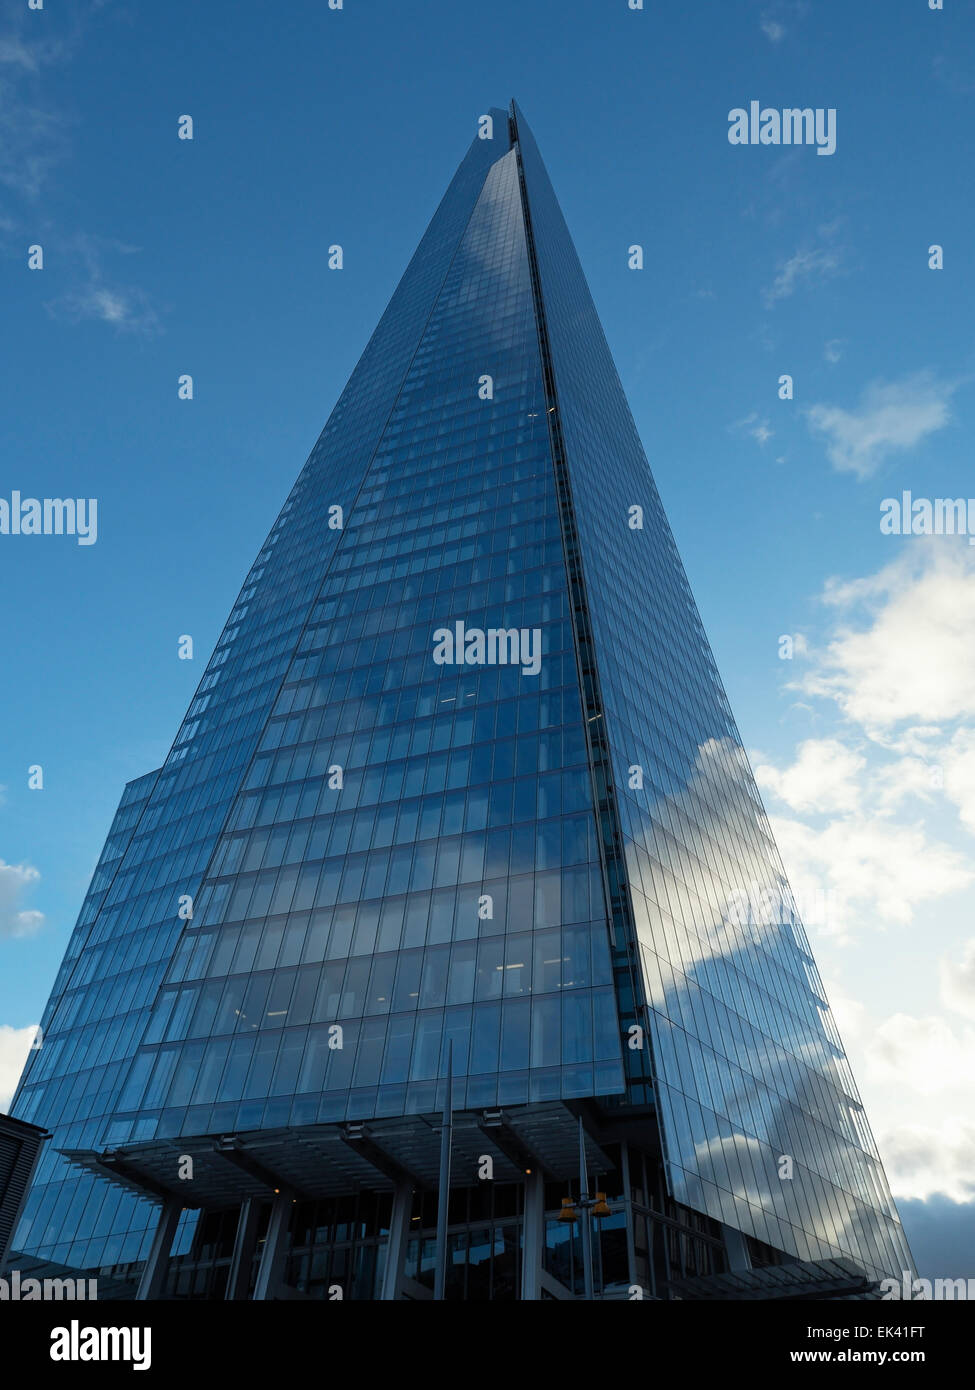 The Shard Skyscaper Cloud Reflections 32 London Bridge Street, London, England, United Kindom Stock Photo